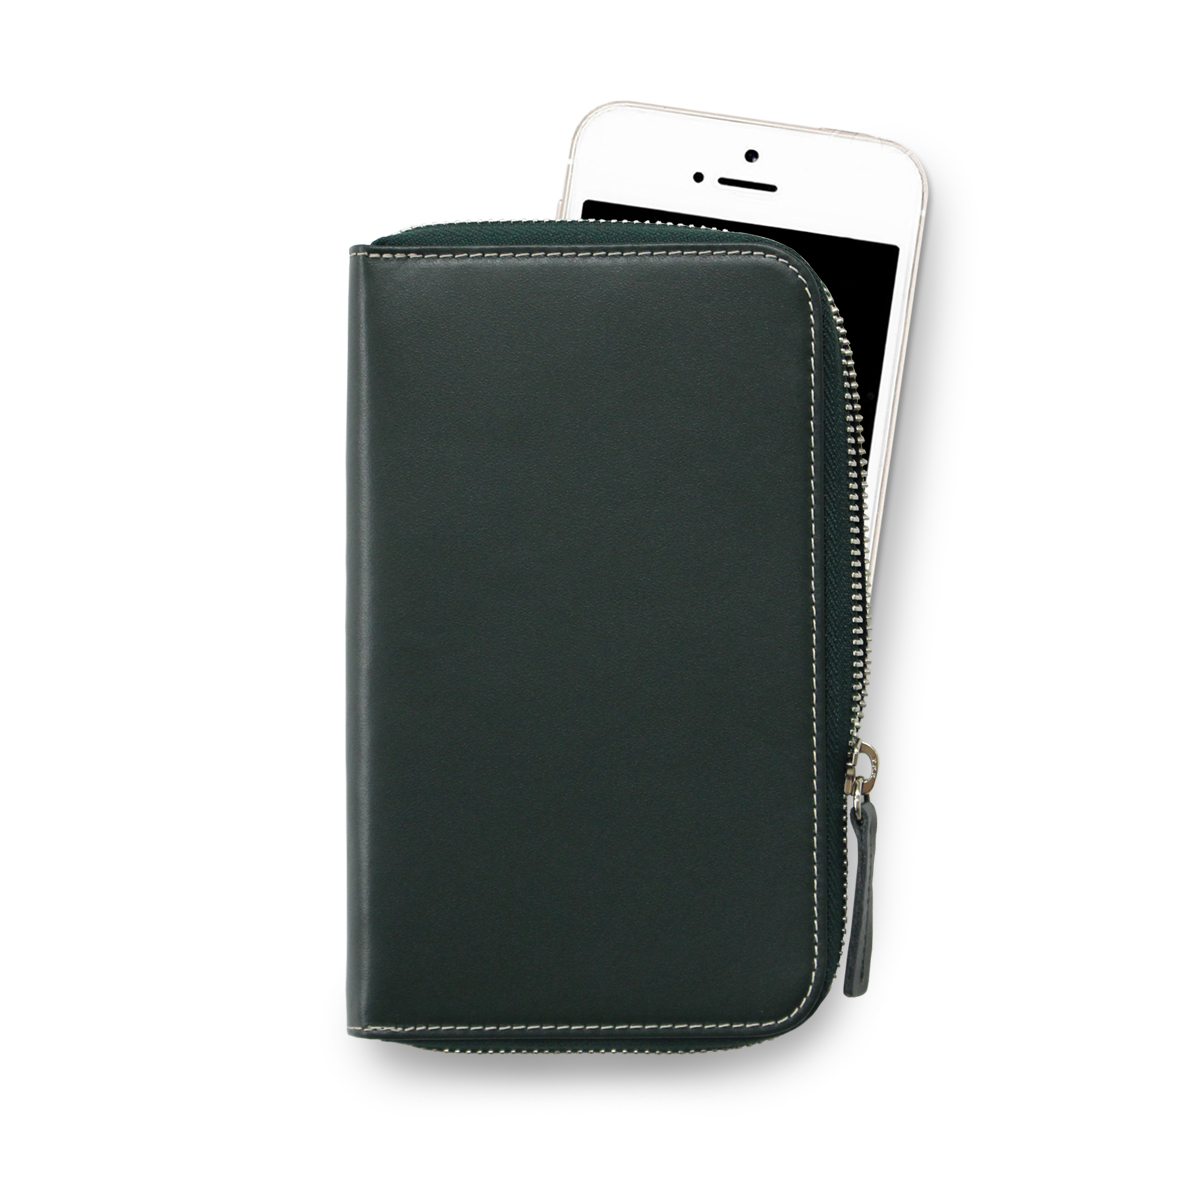 Daily Phone Pocket +_Deep Green